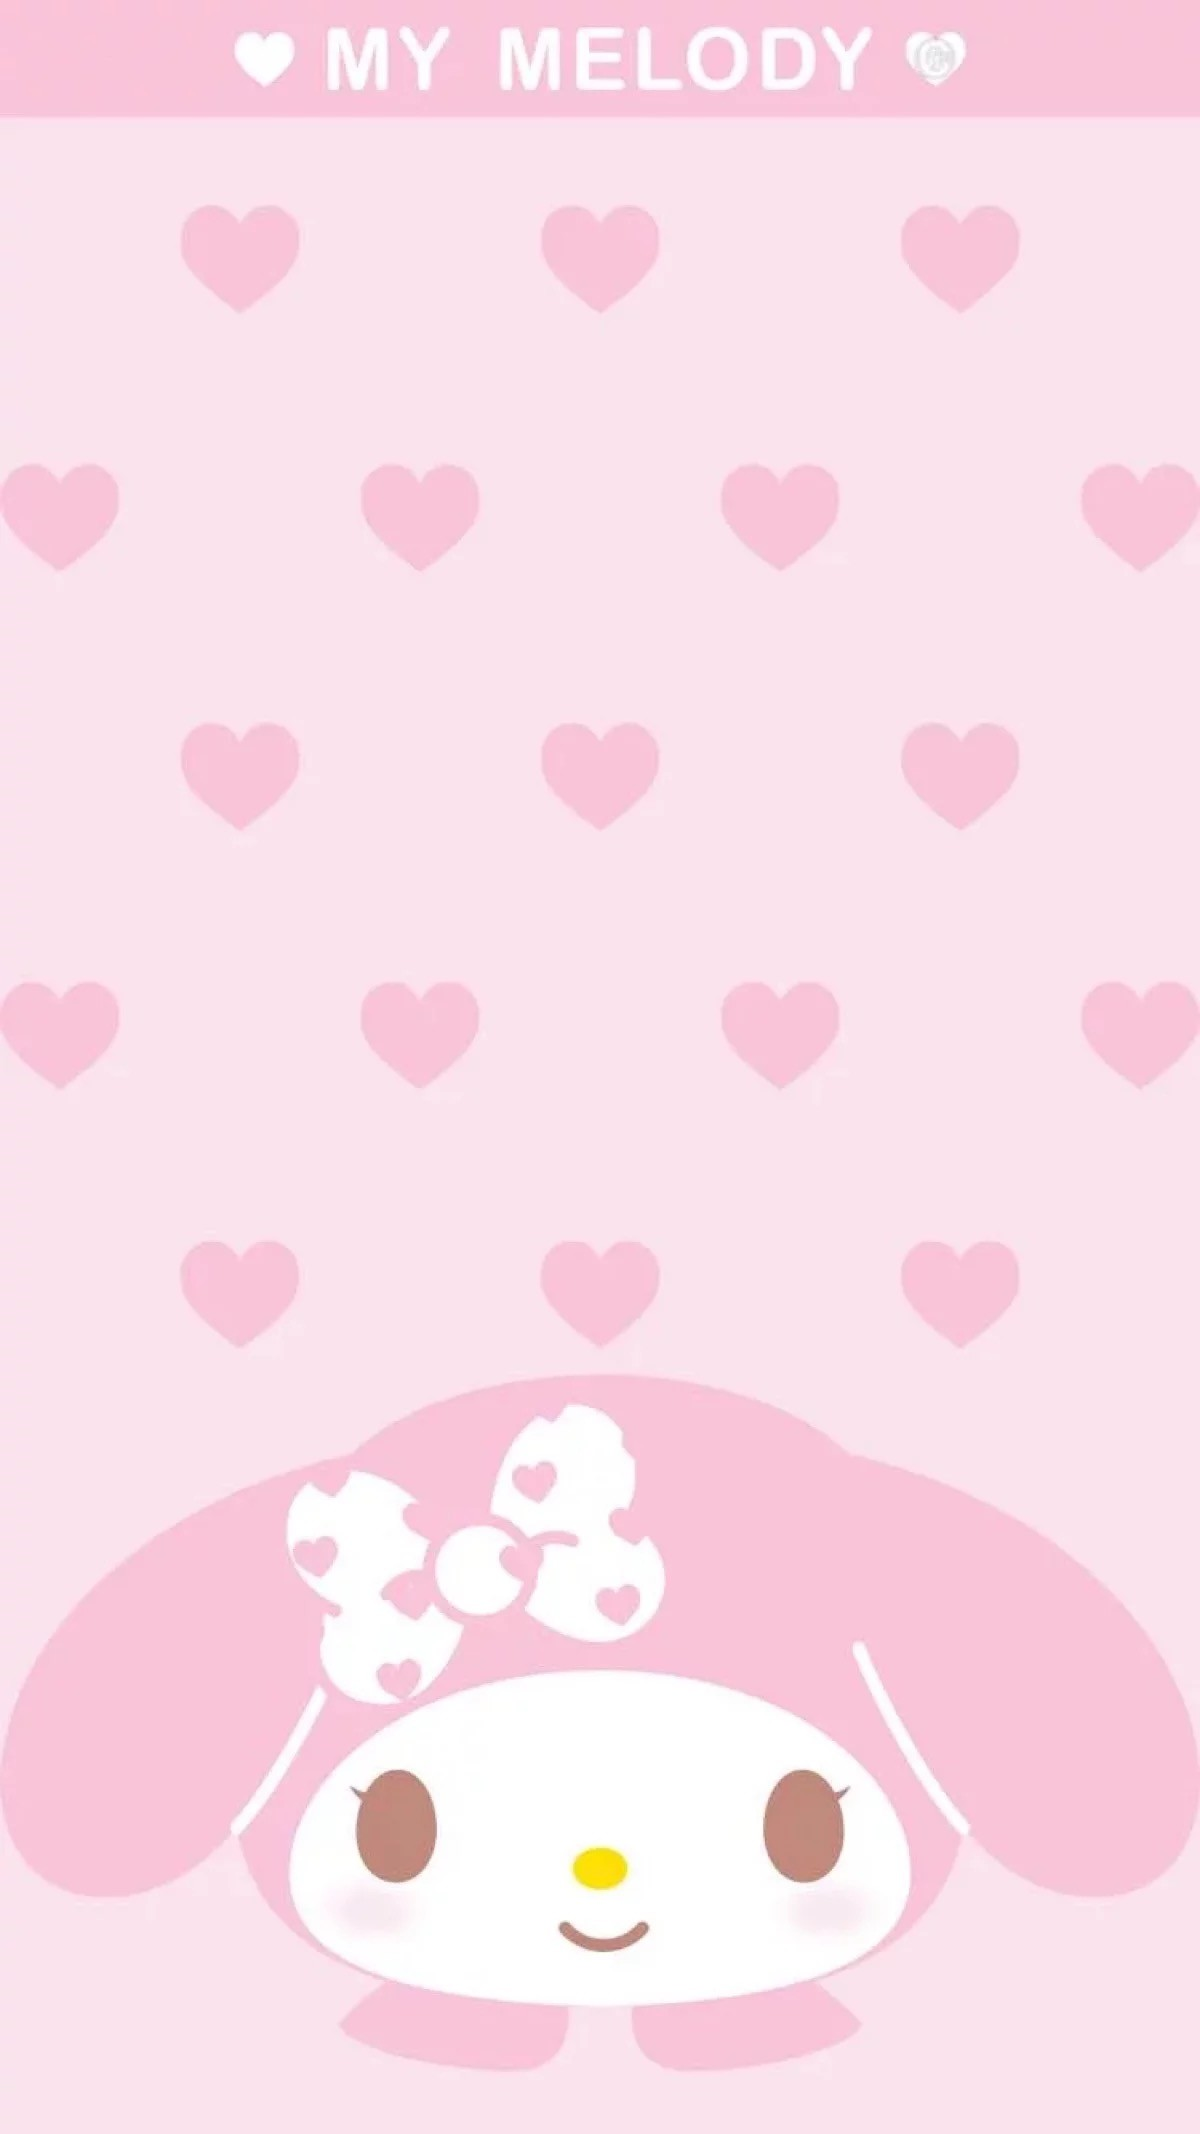 My Melody, Iphone Wallpaper, Hello Kitty, Sanrio, Chibi, Blog, Funds